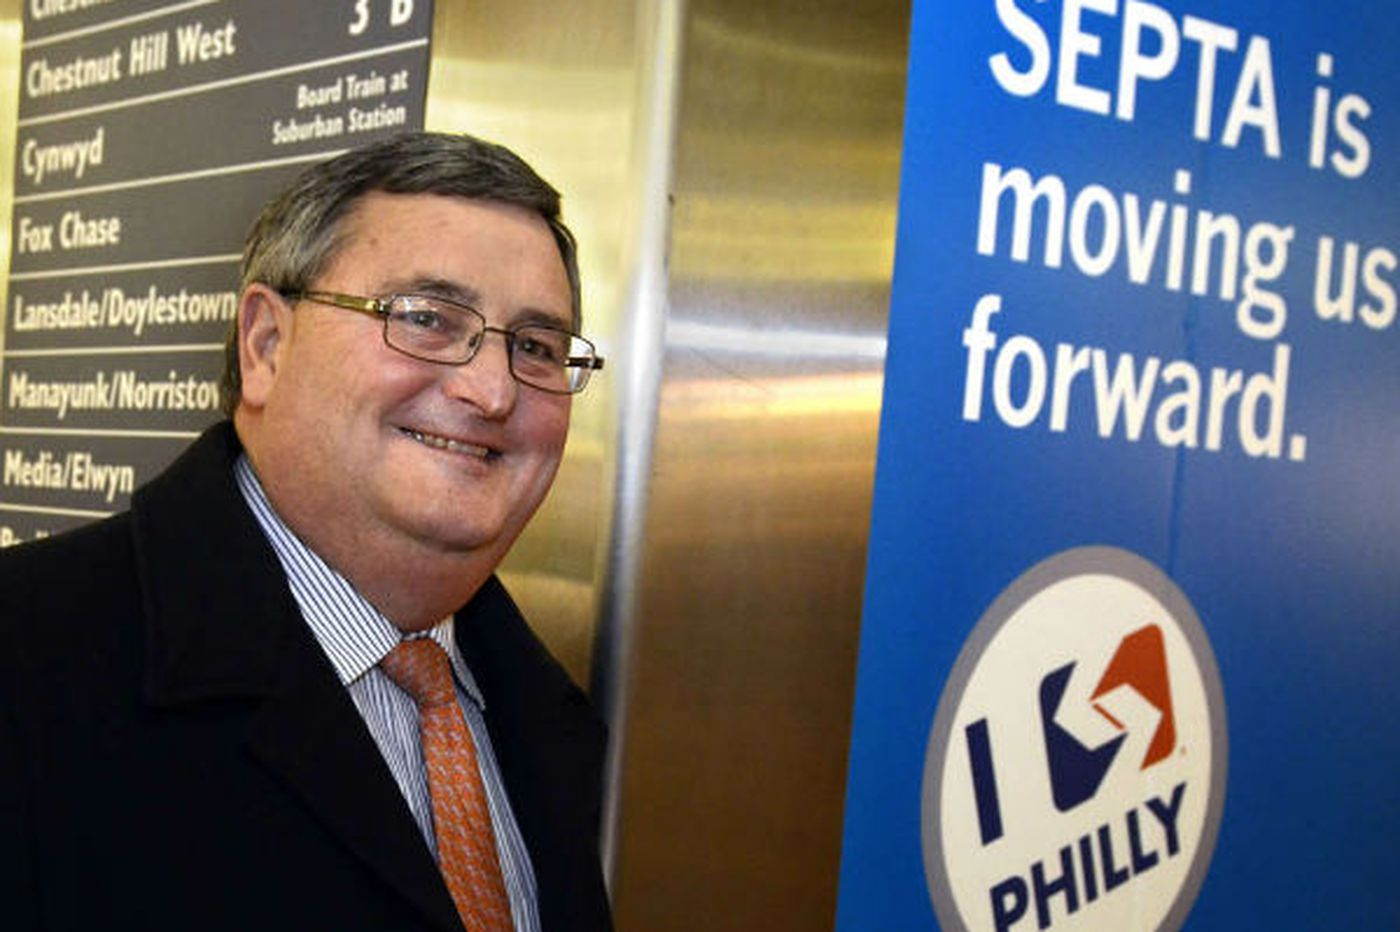 A few words with SEPTA's general manager